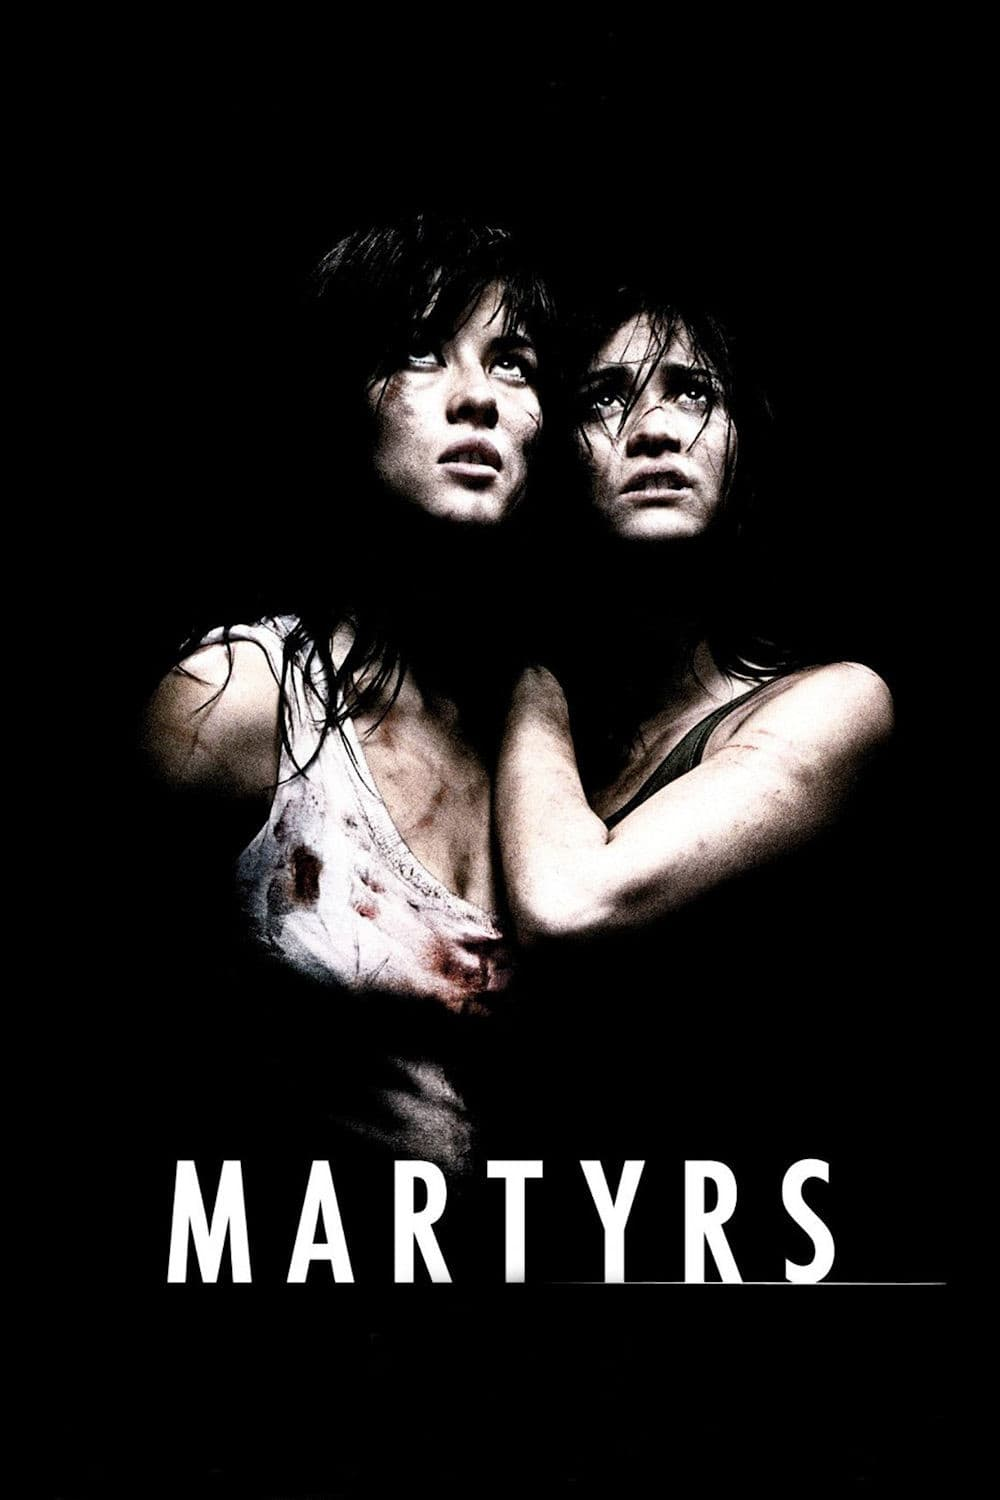 Poster for Martyrs